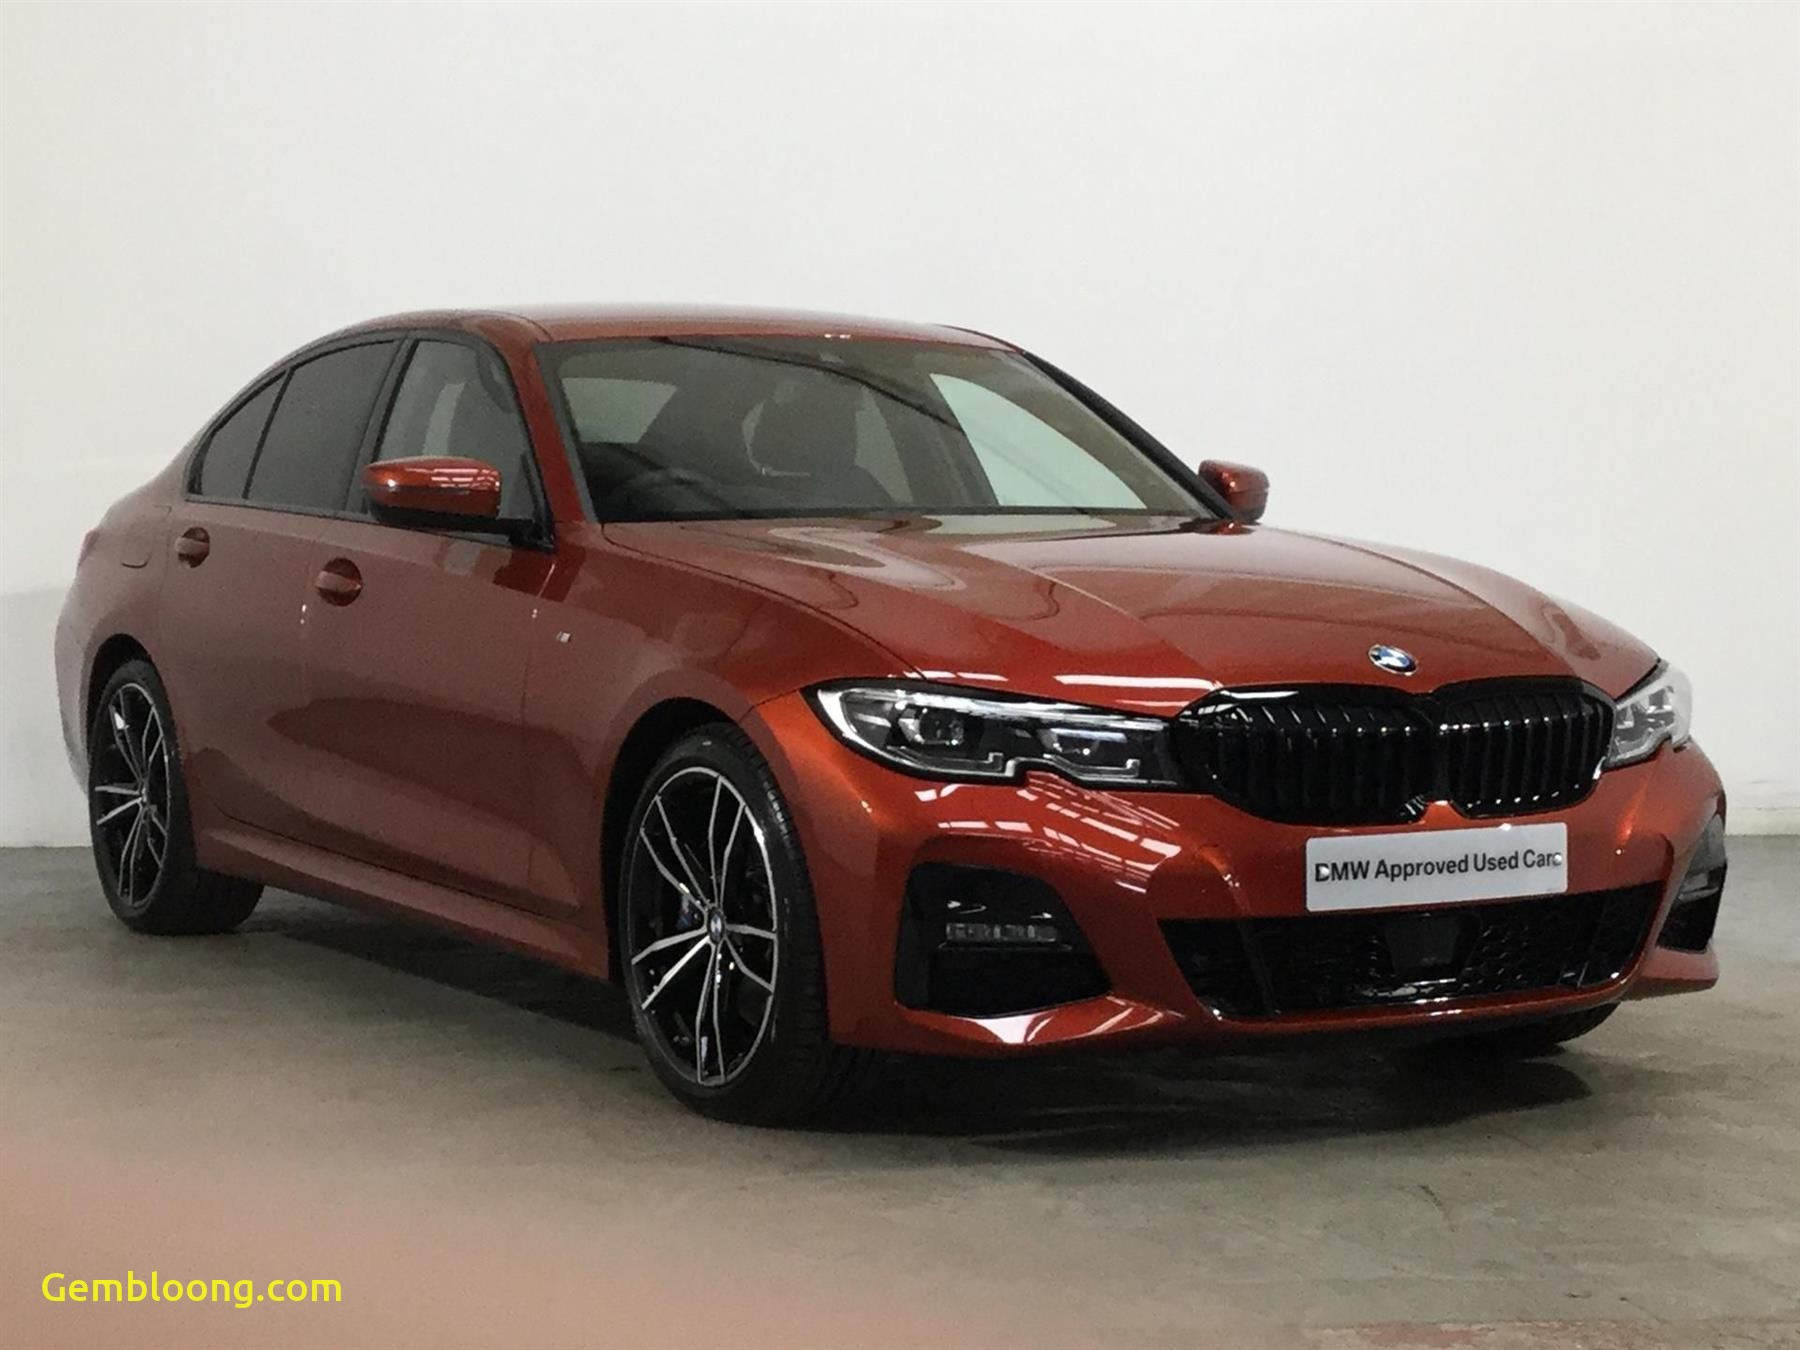 Bmw 3 Series for Sale New Used 2019 Bmw 3 Series G20 320d Xdrive M Sport Saloon B47d